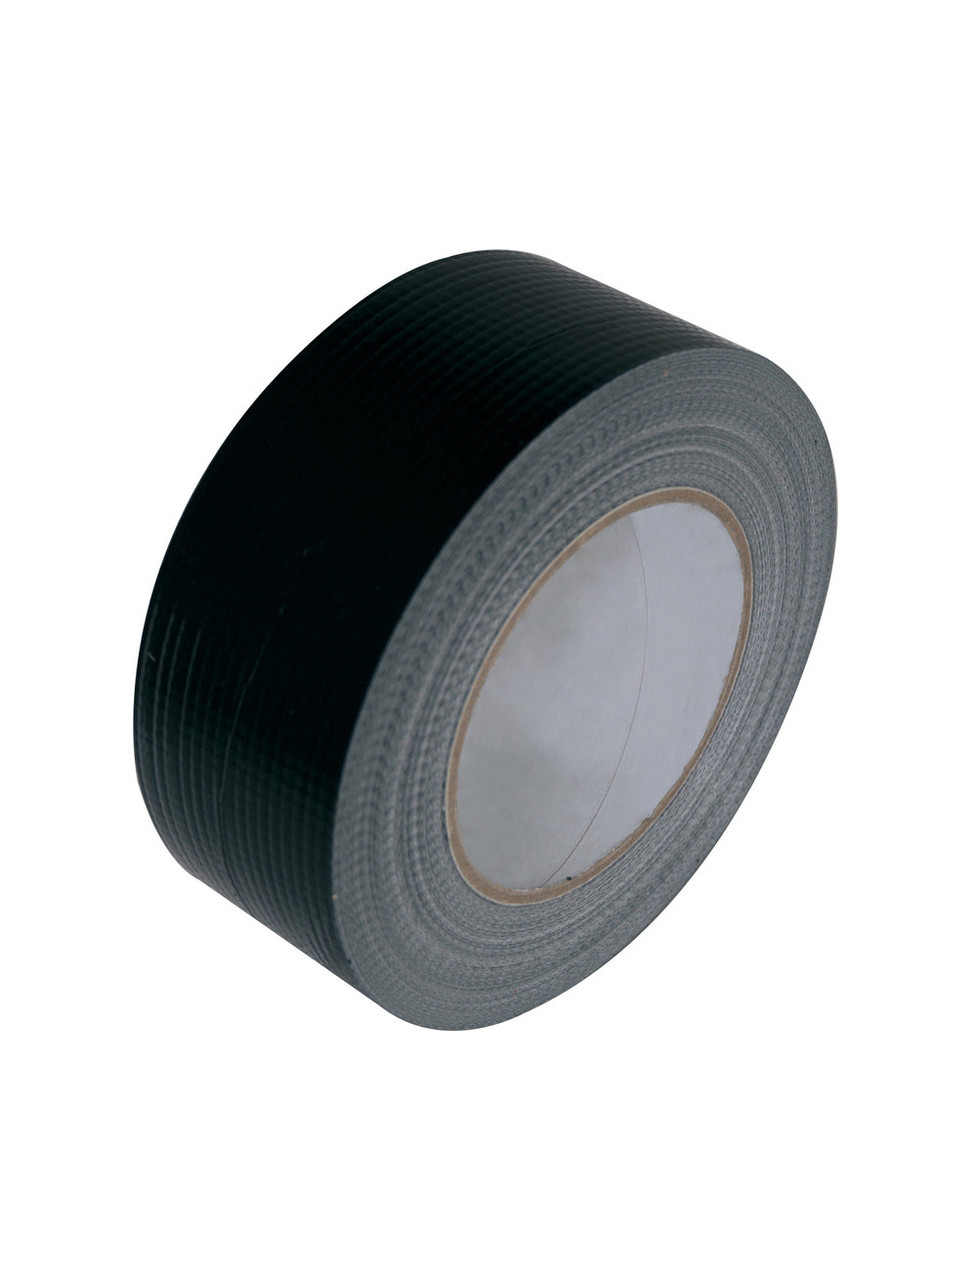 Waterproof Cloth Gaffer Tape - Cameragrip